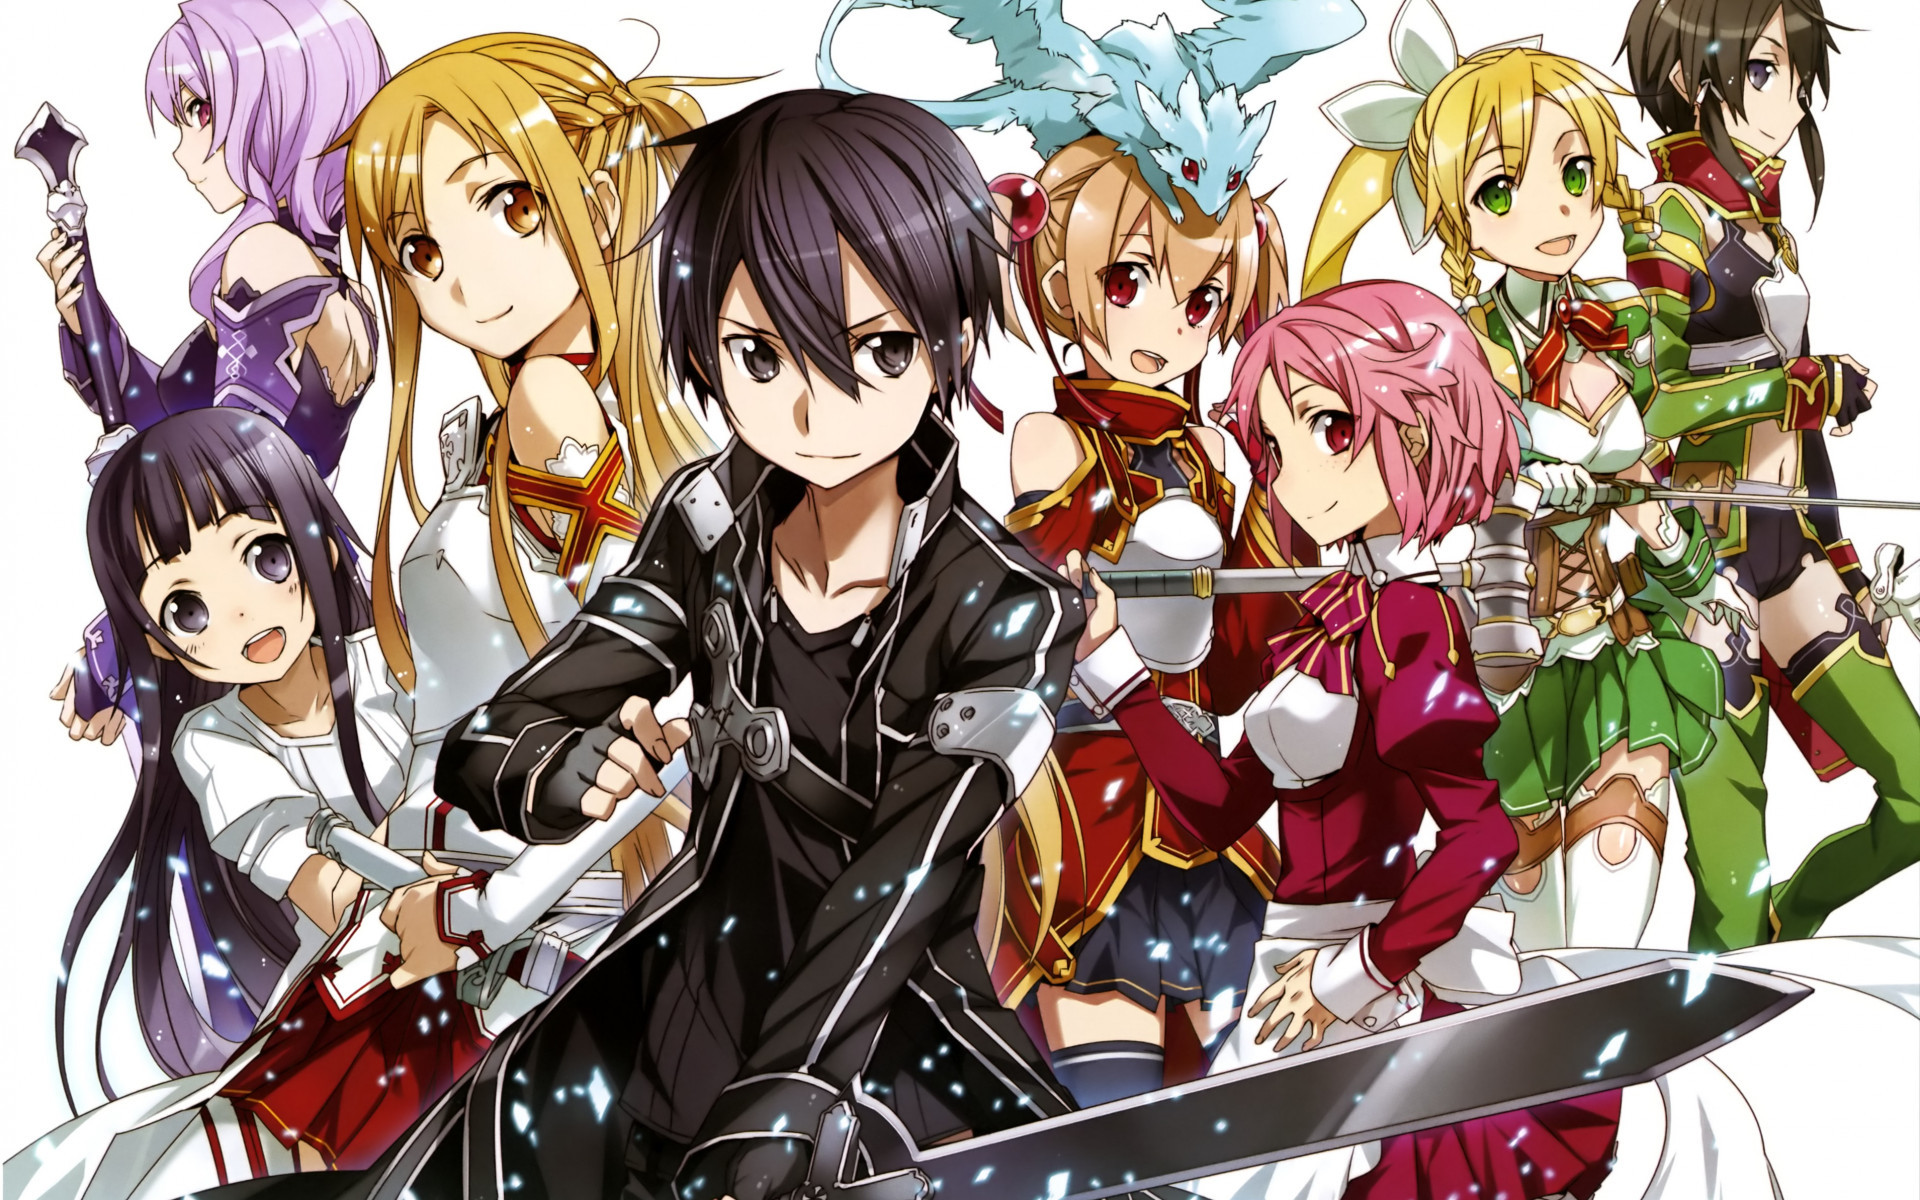 1920x1200 HD Wallpaper Sword Art Online 2 Asuna Kirito Sinon